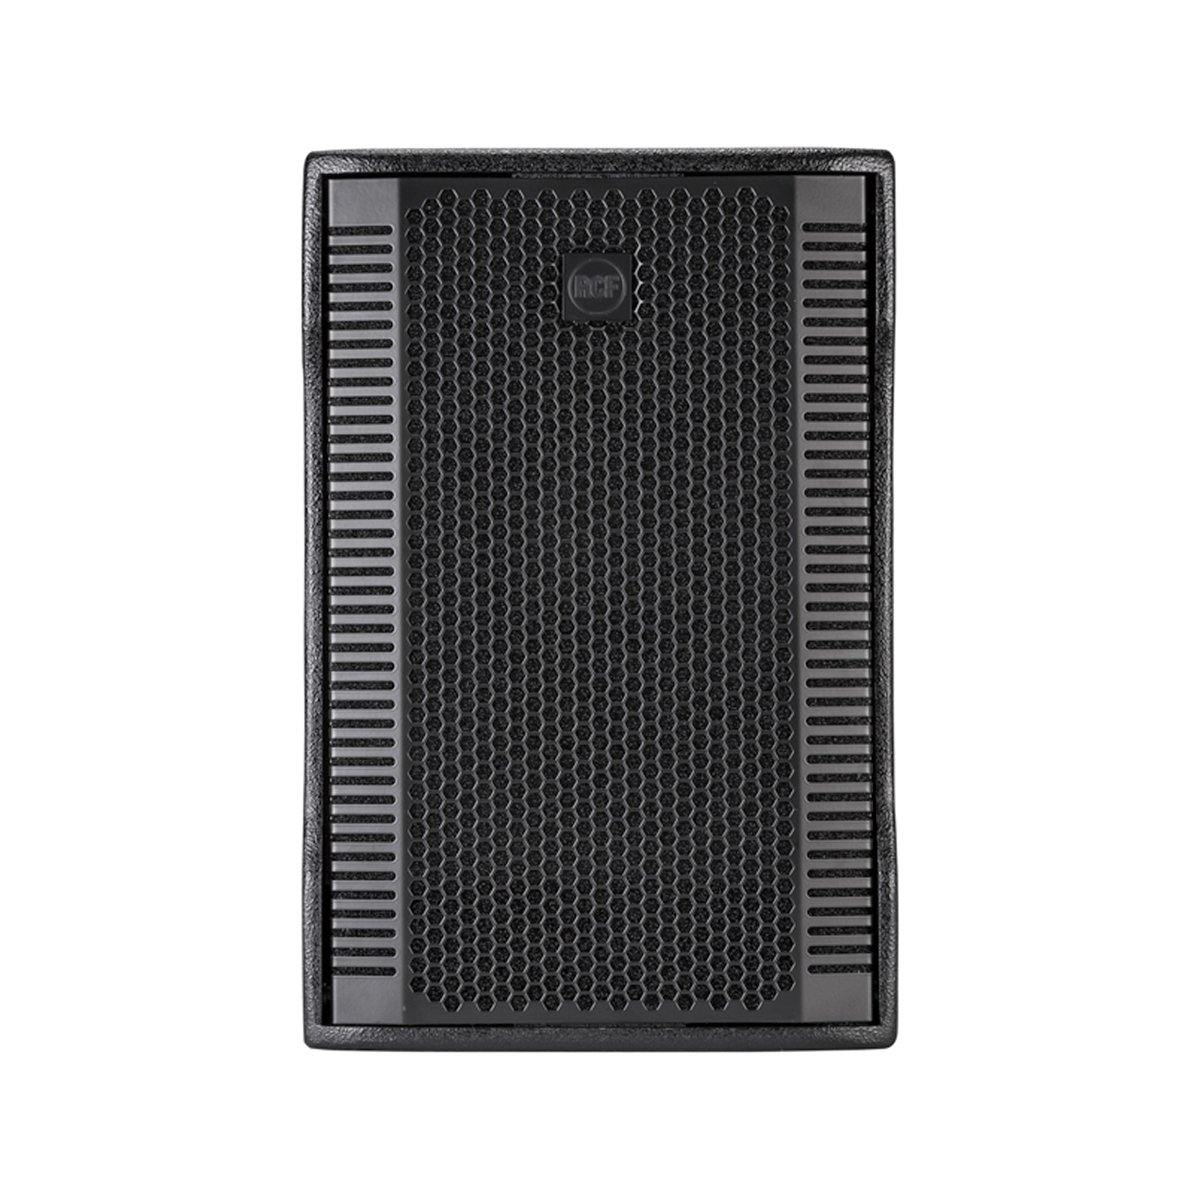 RCF Evox 5 Compact Active Two-Way PA System - ICONS Shop